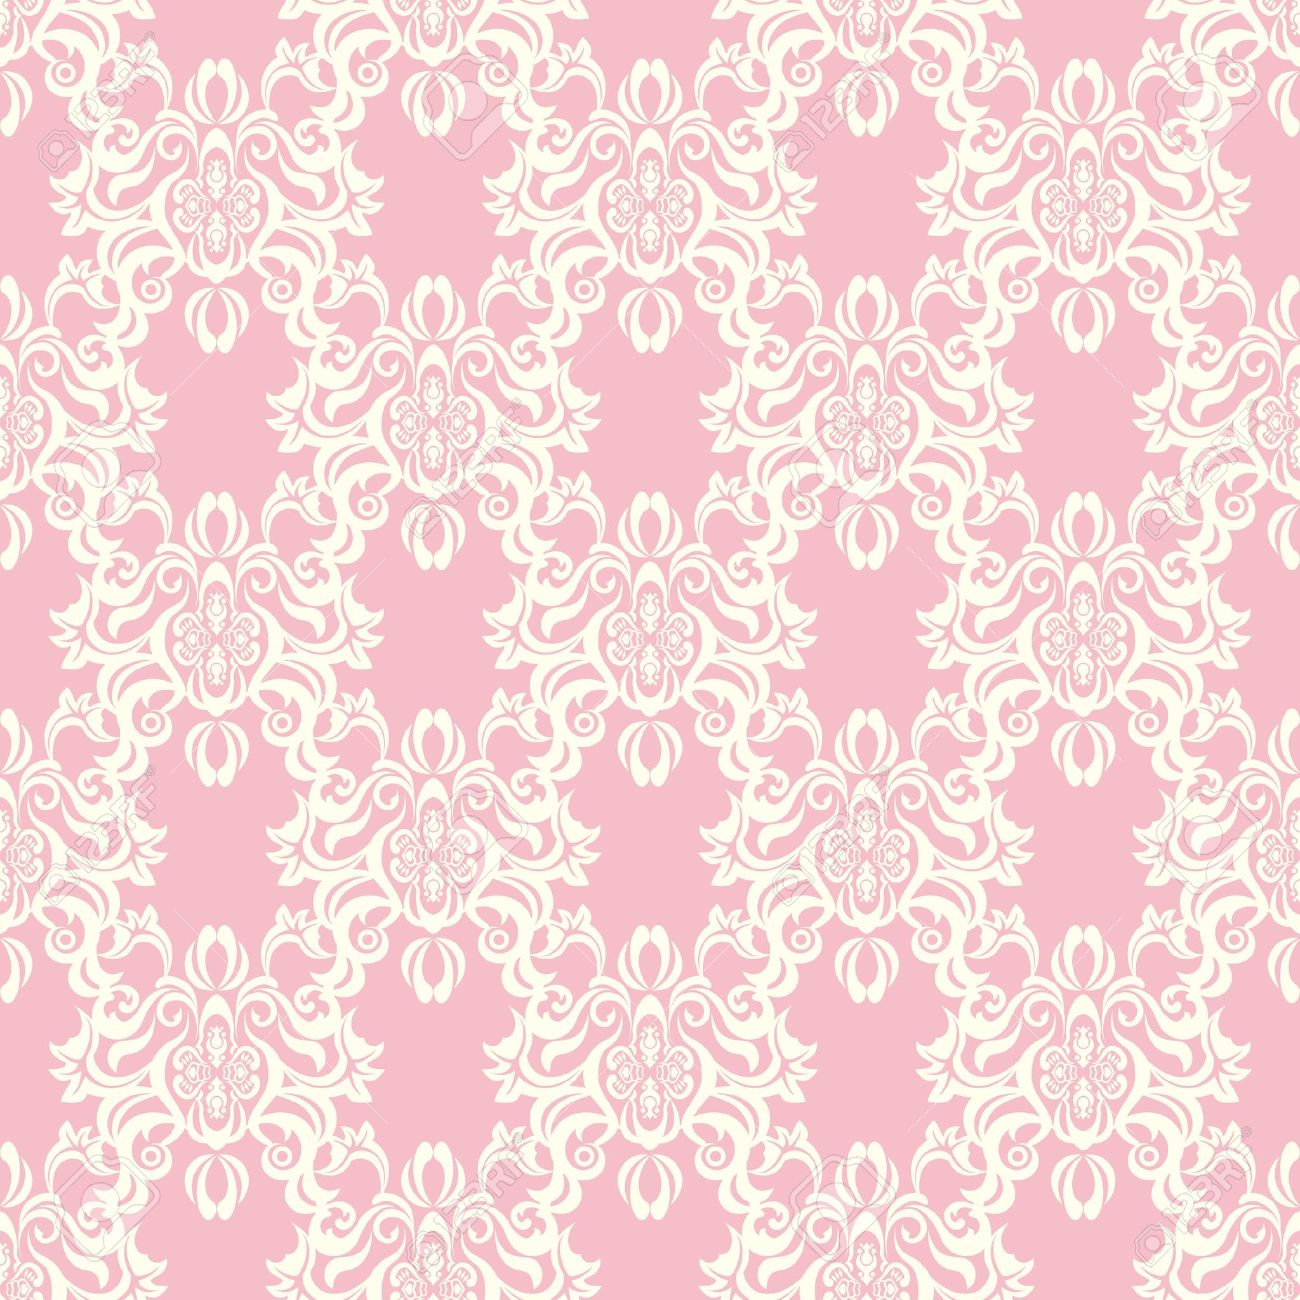 Download Light Pink Vintage Wallpaper Gallery